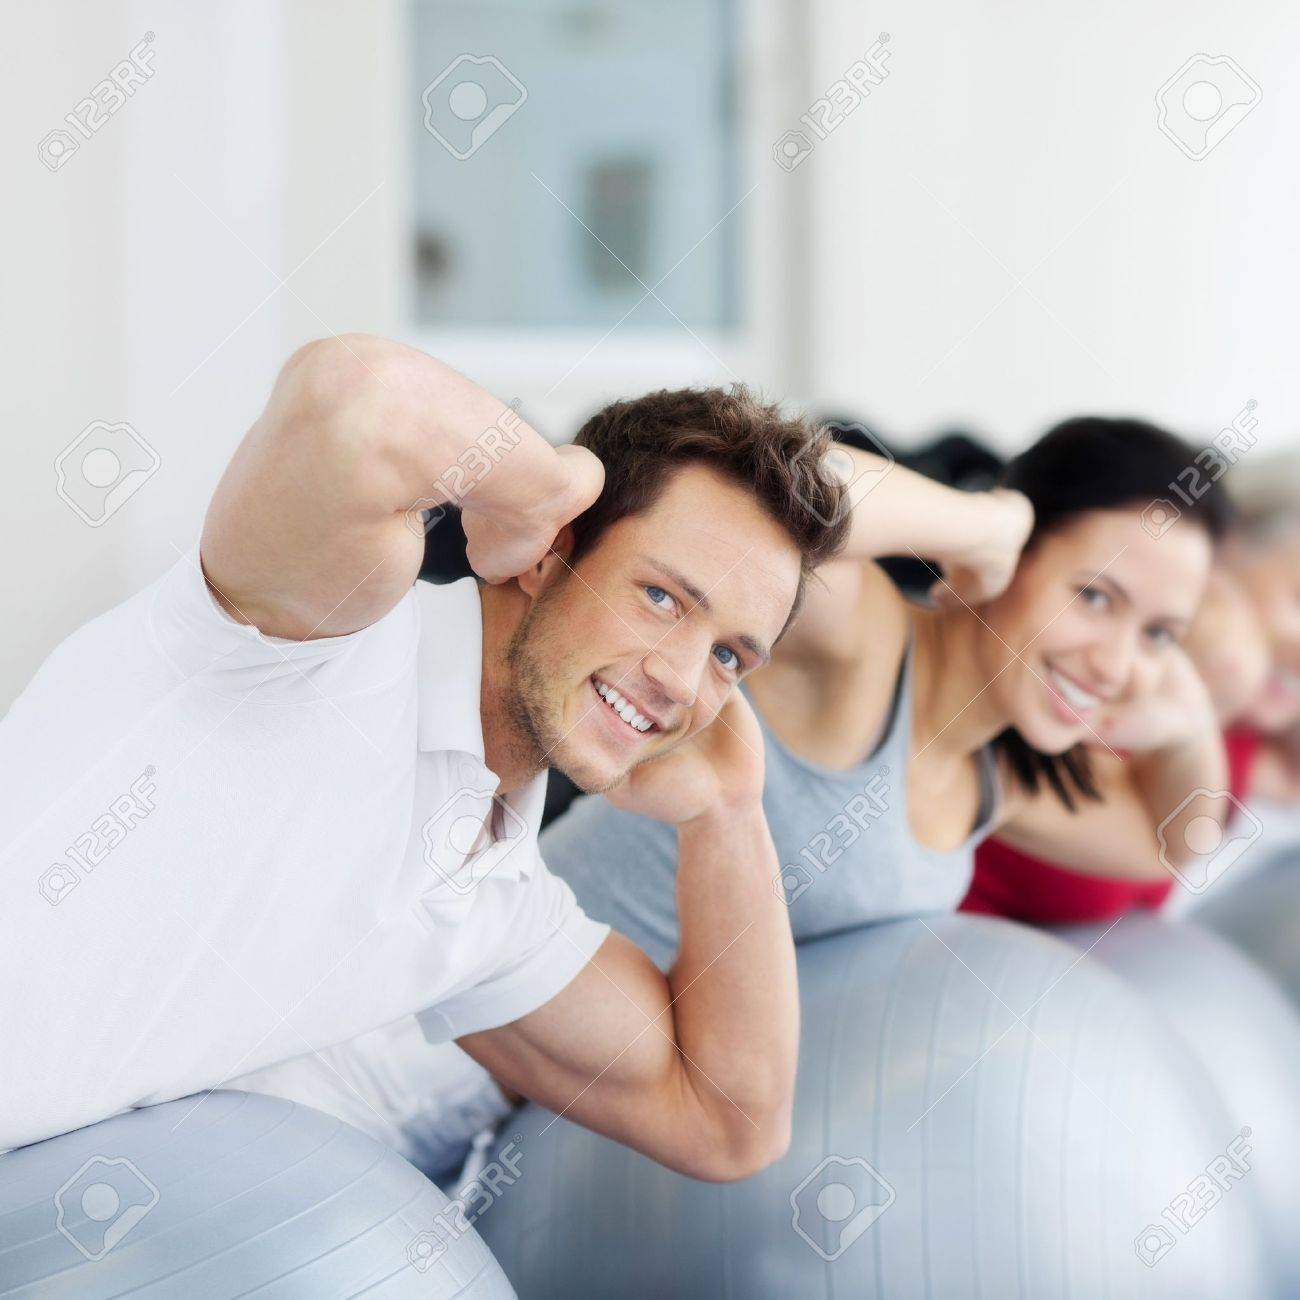 Portrait of happy group exercising on Swiss ball Stock Photo - 21315619